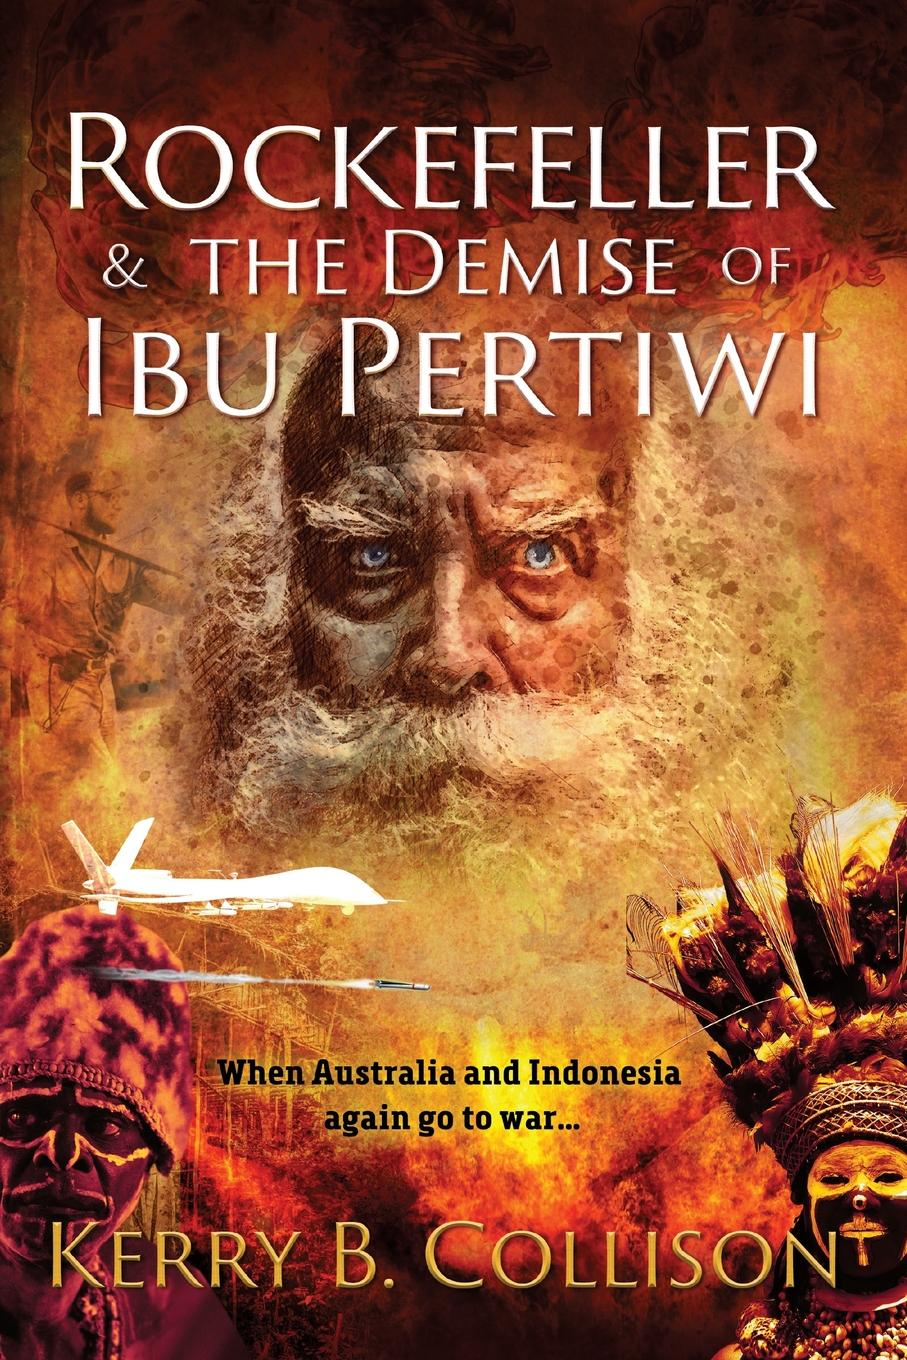 Kerry B. Collison Rockefeller . The Demise Of Ibu Pertiwi carprie new replacement atx motherboard switch on off reset power cable for pc computer 17aug23 dropshipping